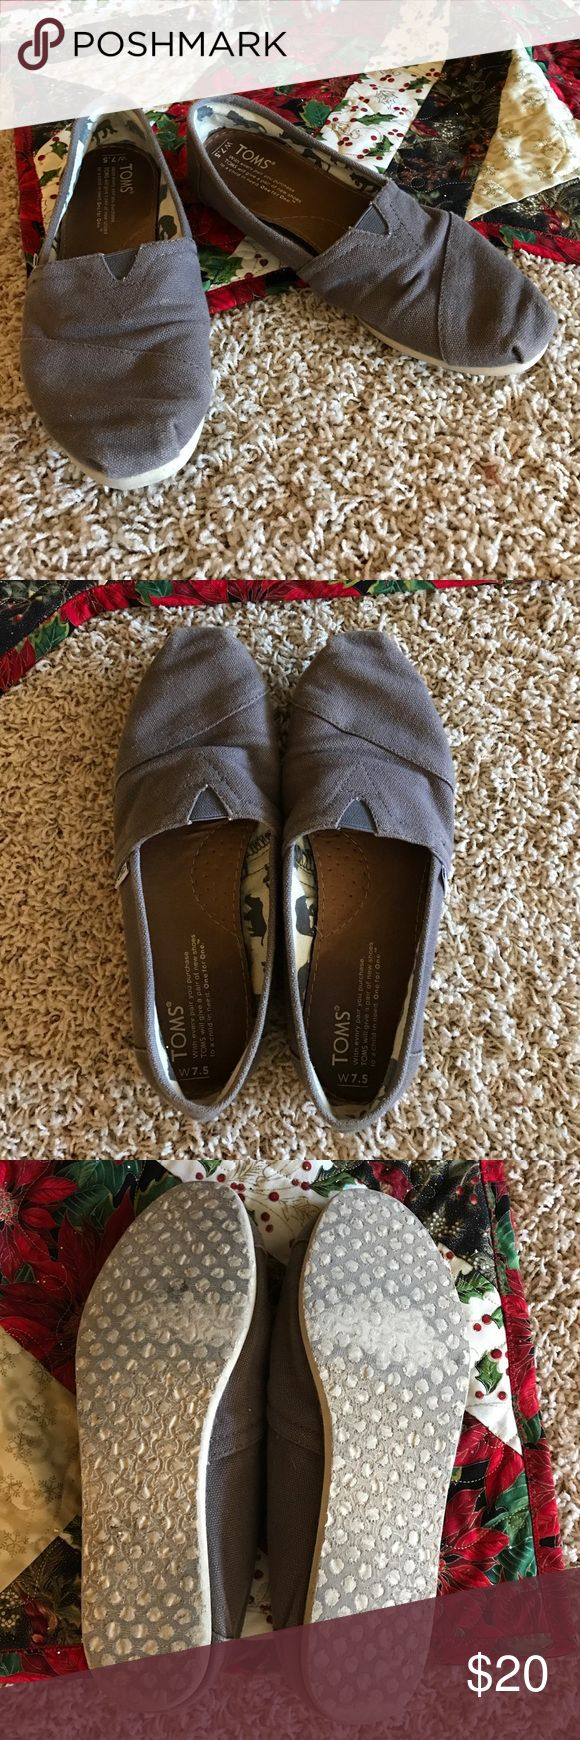 Women's Ash Gray Toms Ash Gray Toms shoes! Gently loved, great condition. Size 7.5 women's TOMS Shoes Flats & Loafers